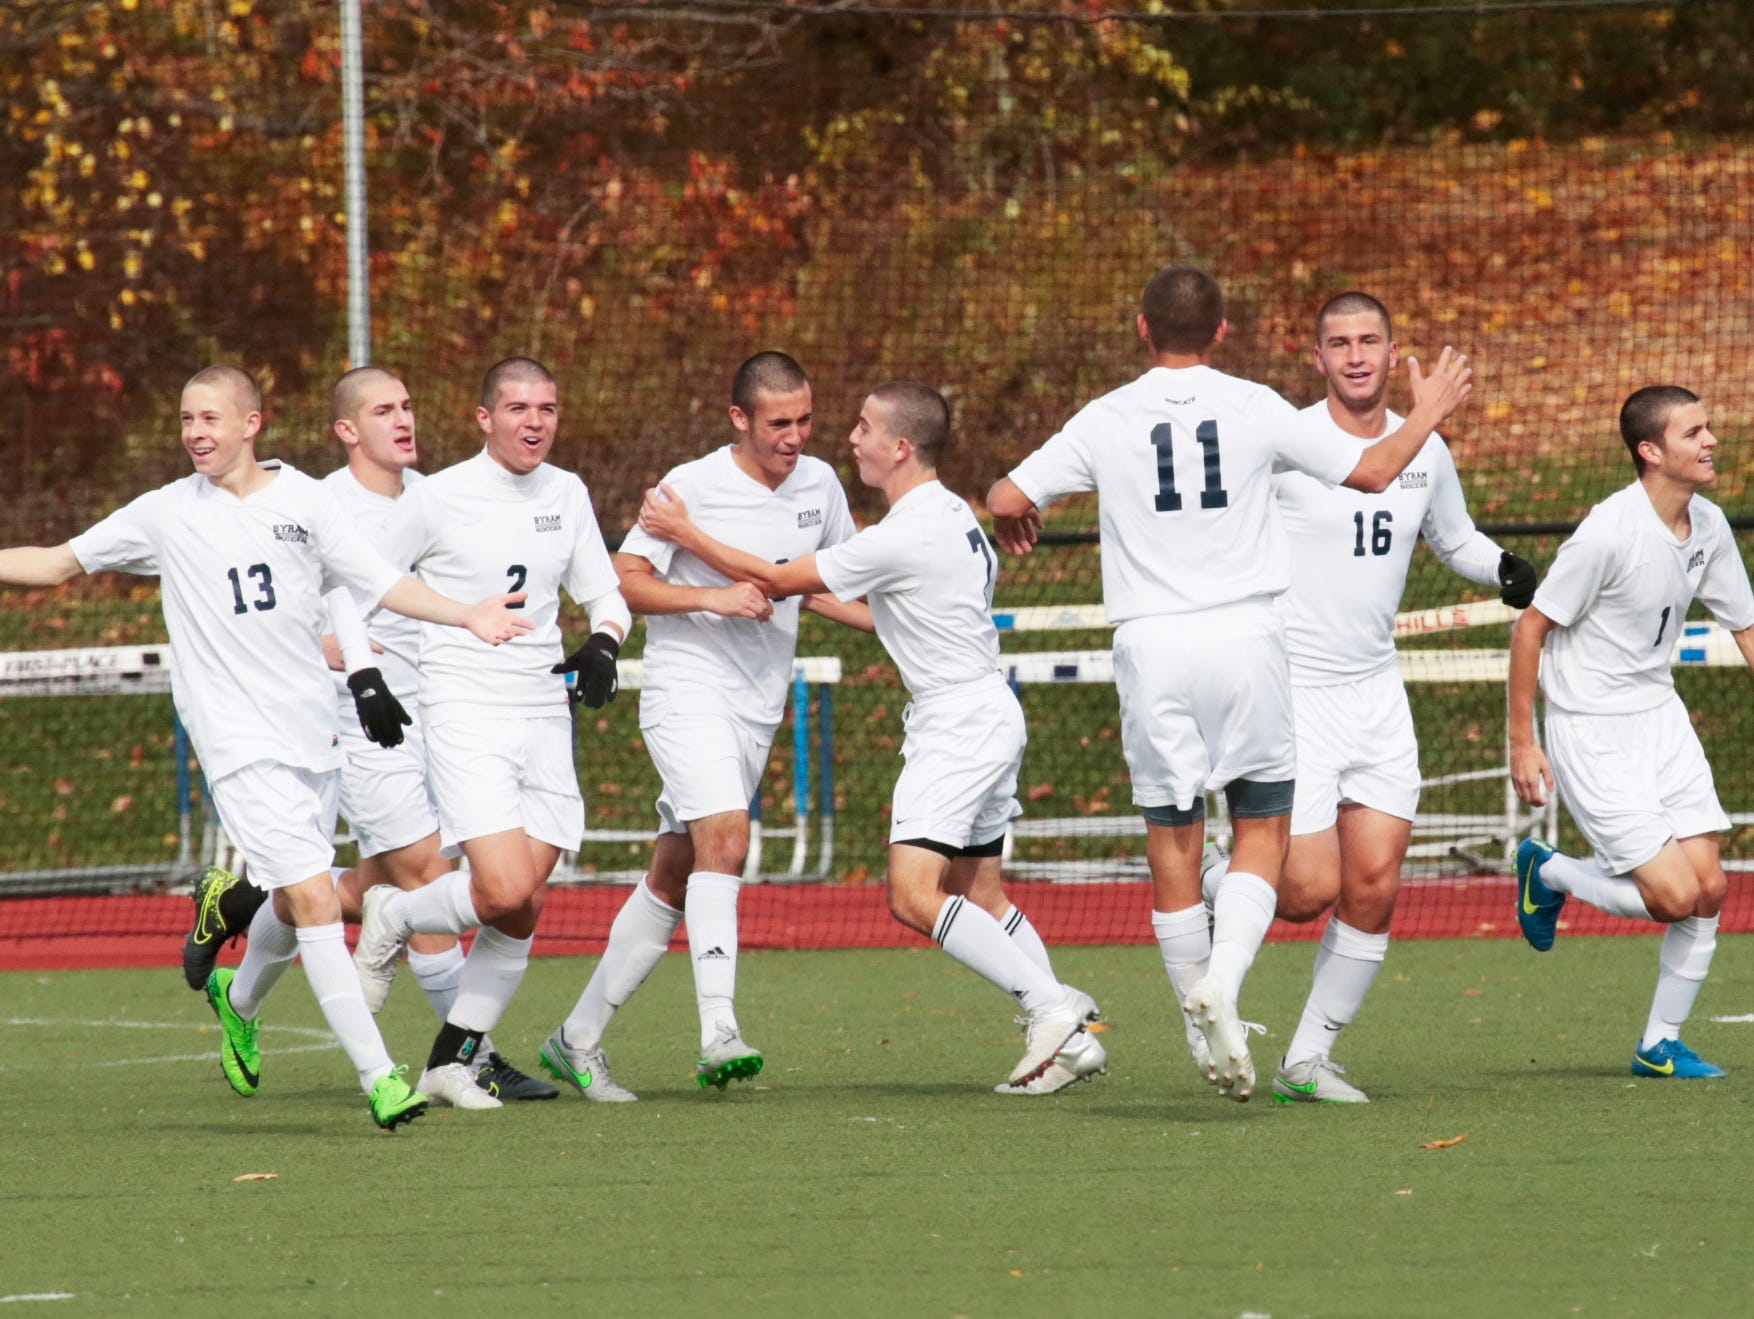 Bryrum Hills celebrate after scoring against Tappan Zee during the first half at Byrum Hills High School in Armonk on Oct. 29, 2015.